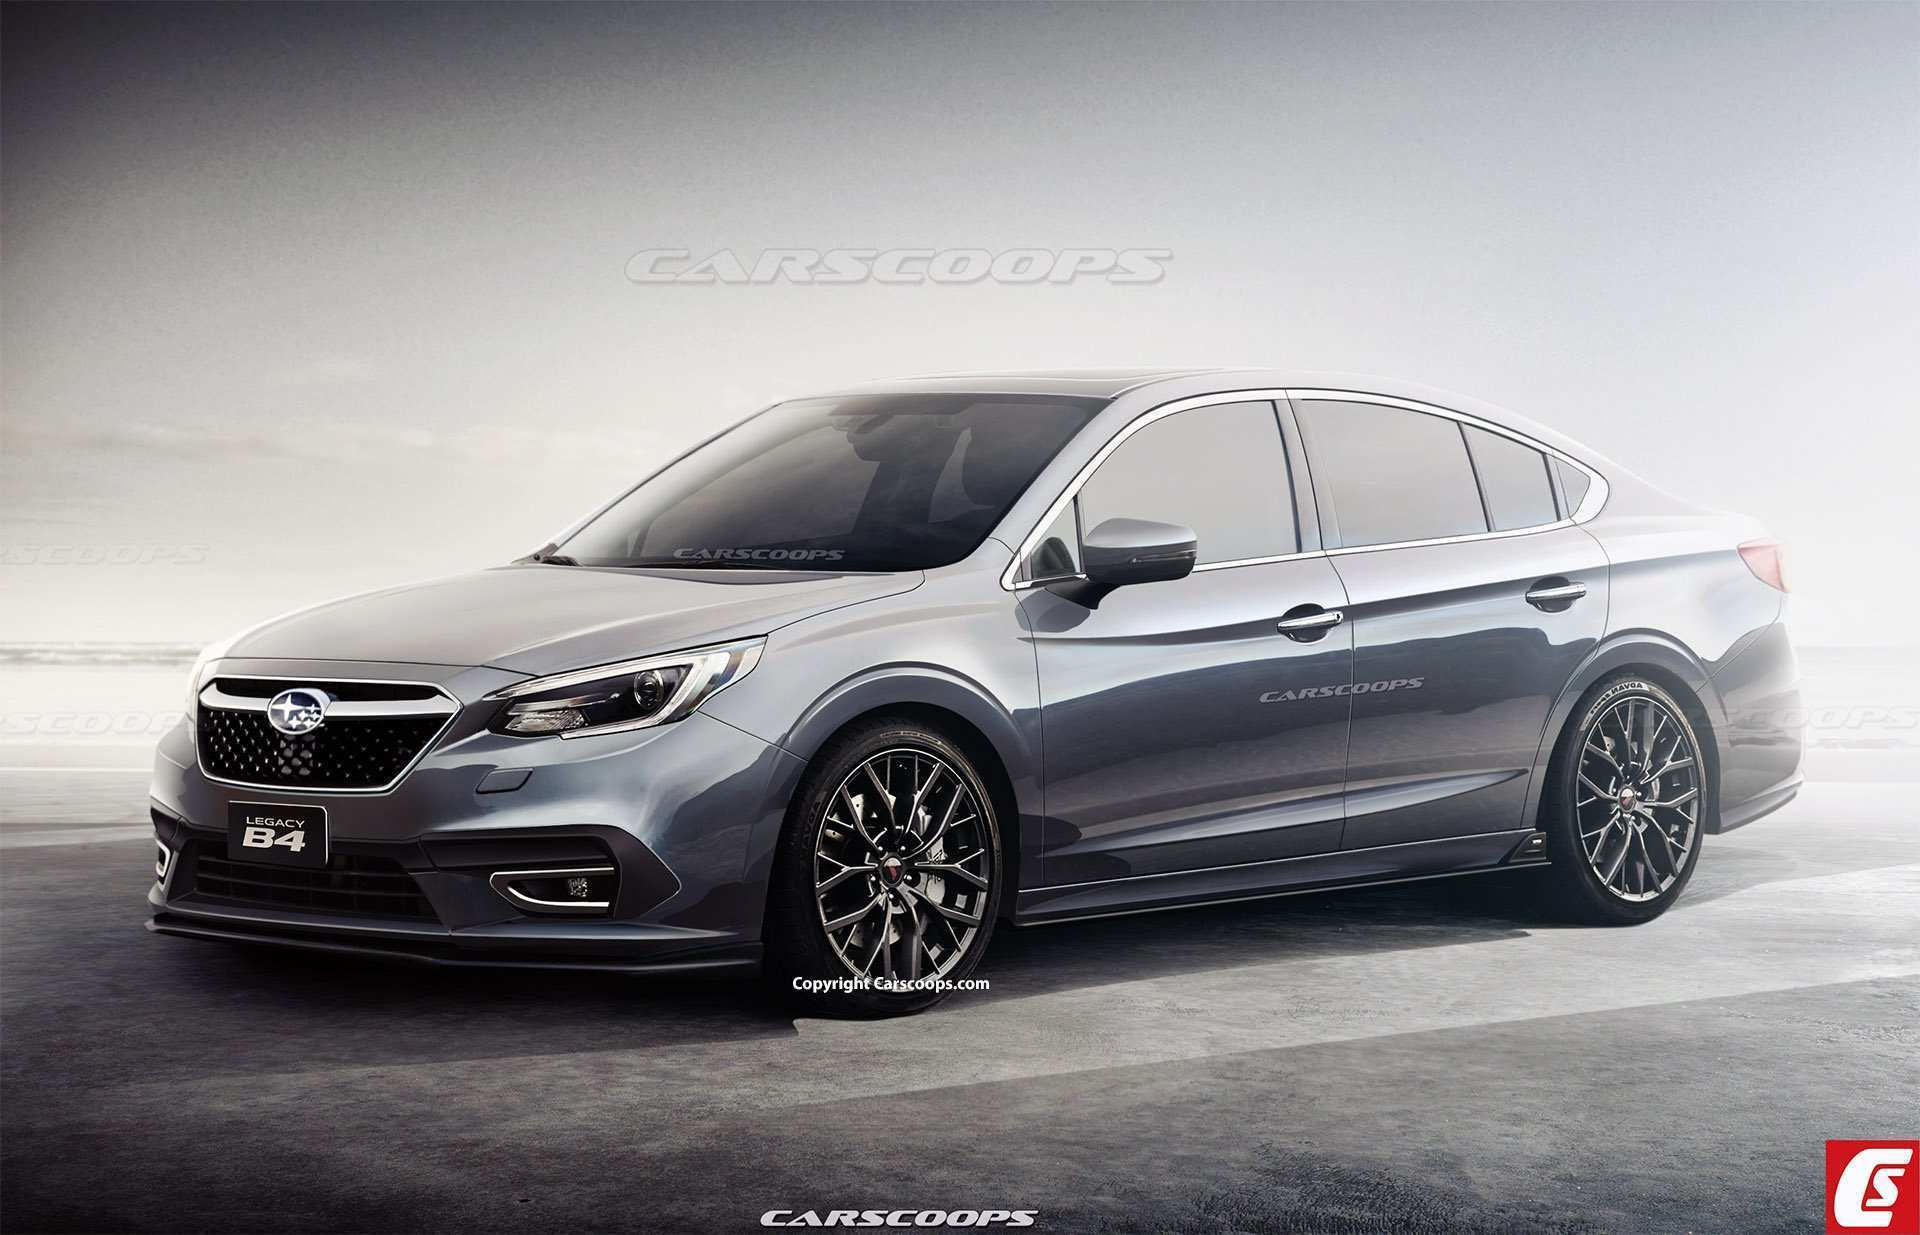 32 Best Subaru Legacy 2020 Turbo New Concept